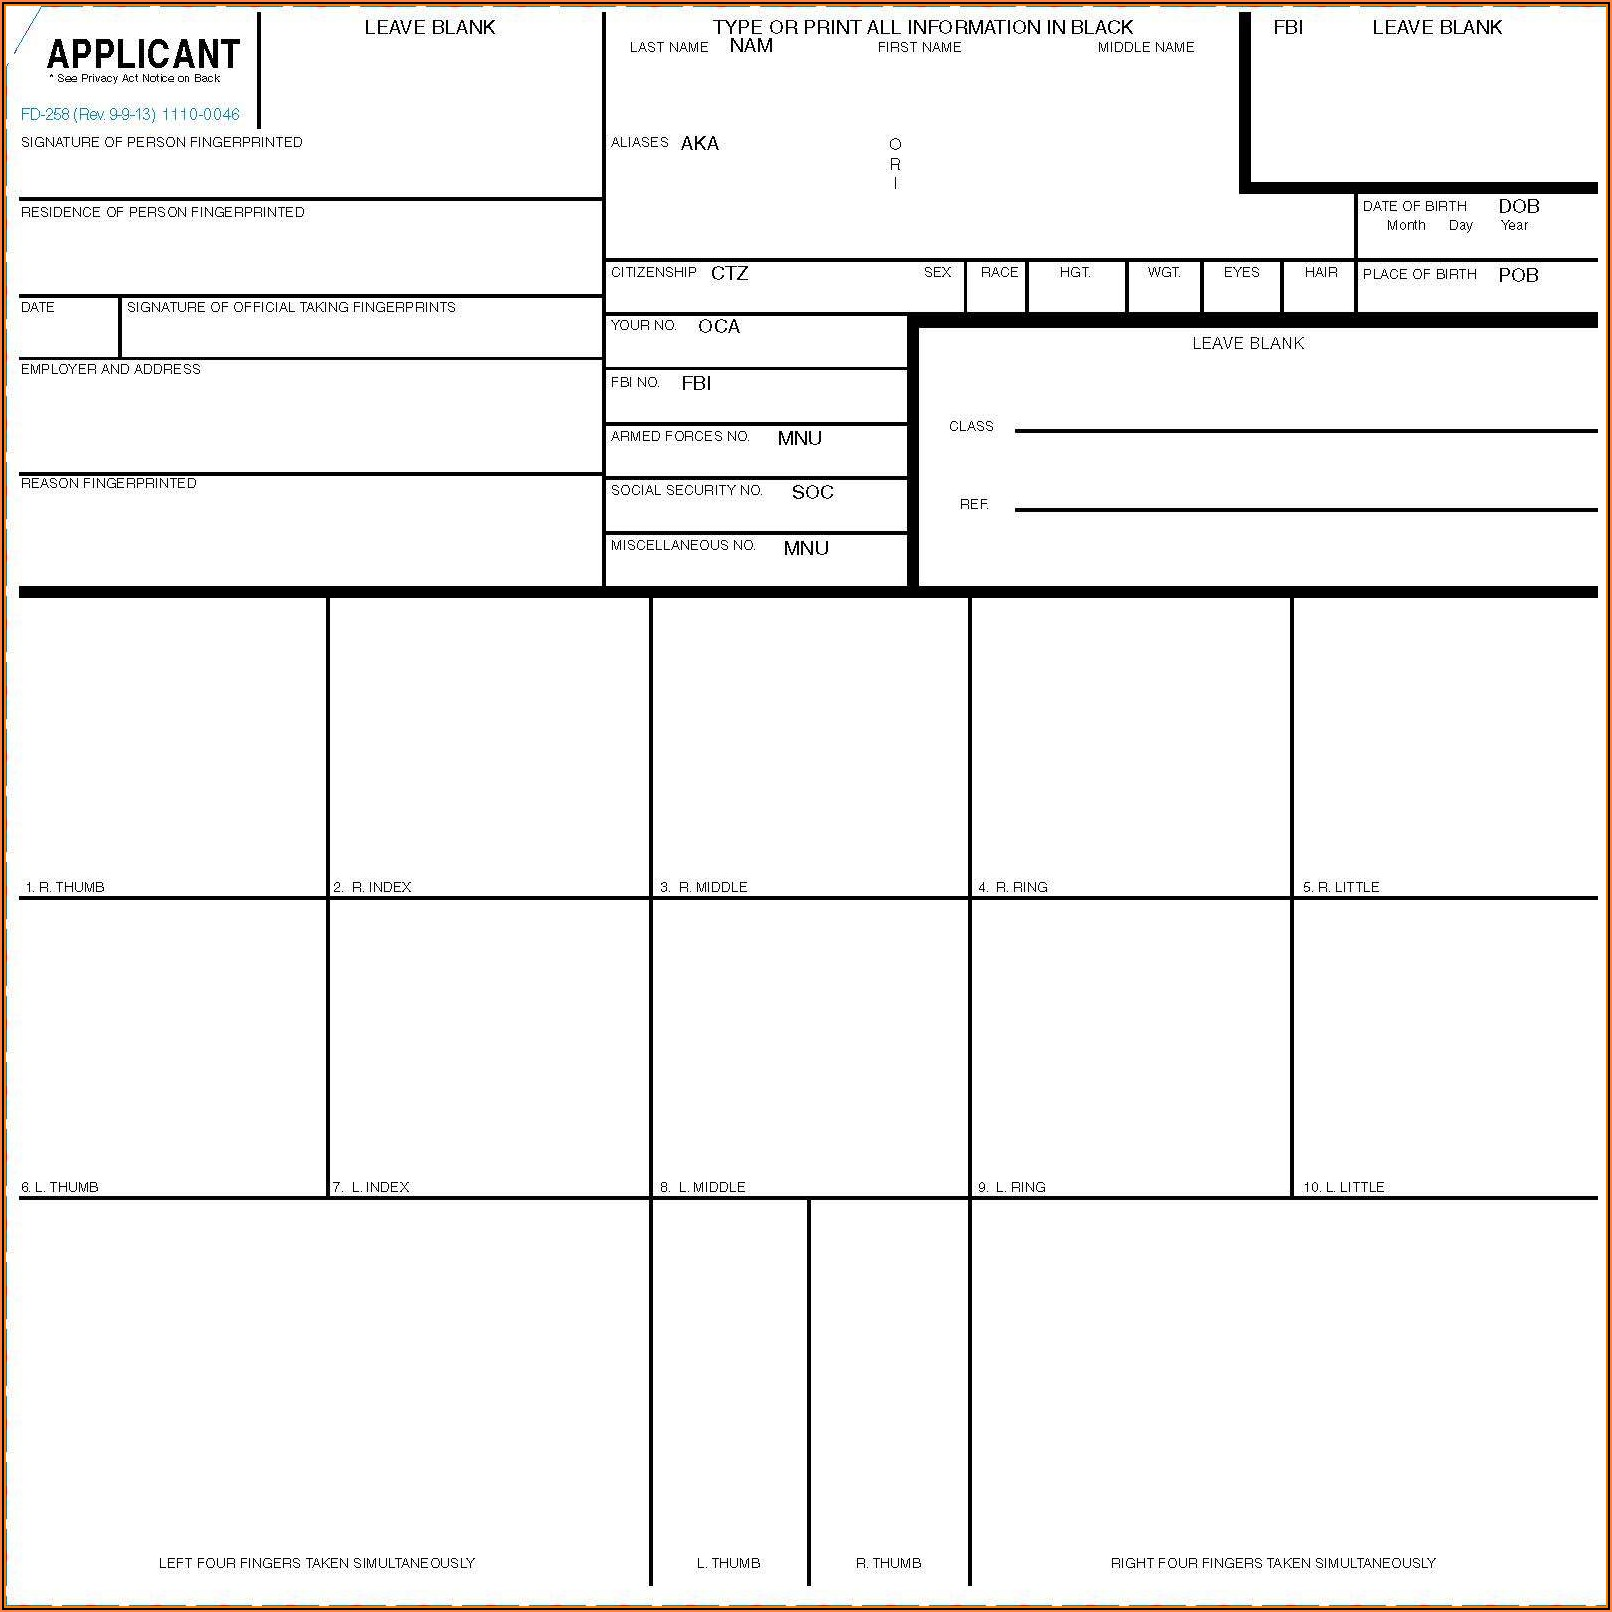 Standard Fingerprint Form (fd 258)